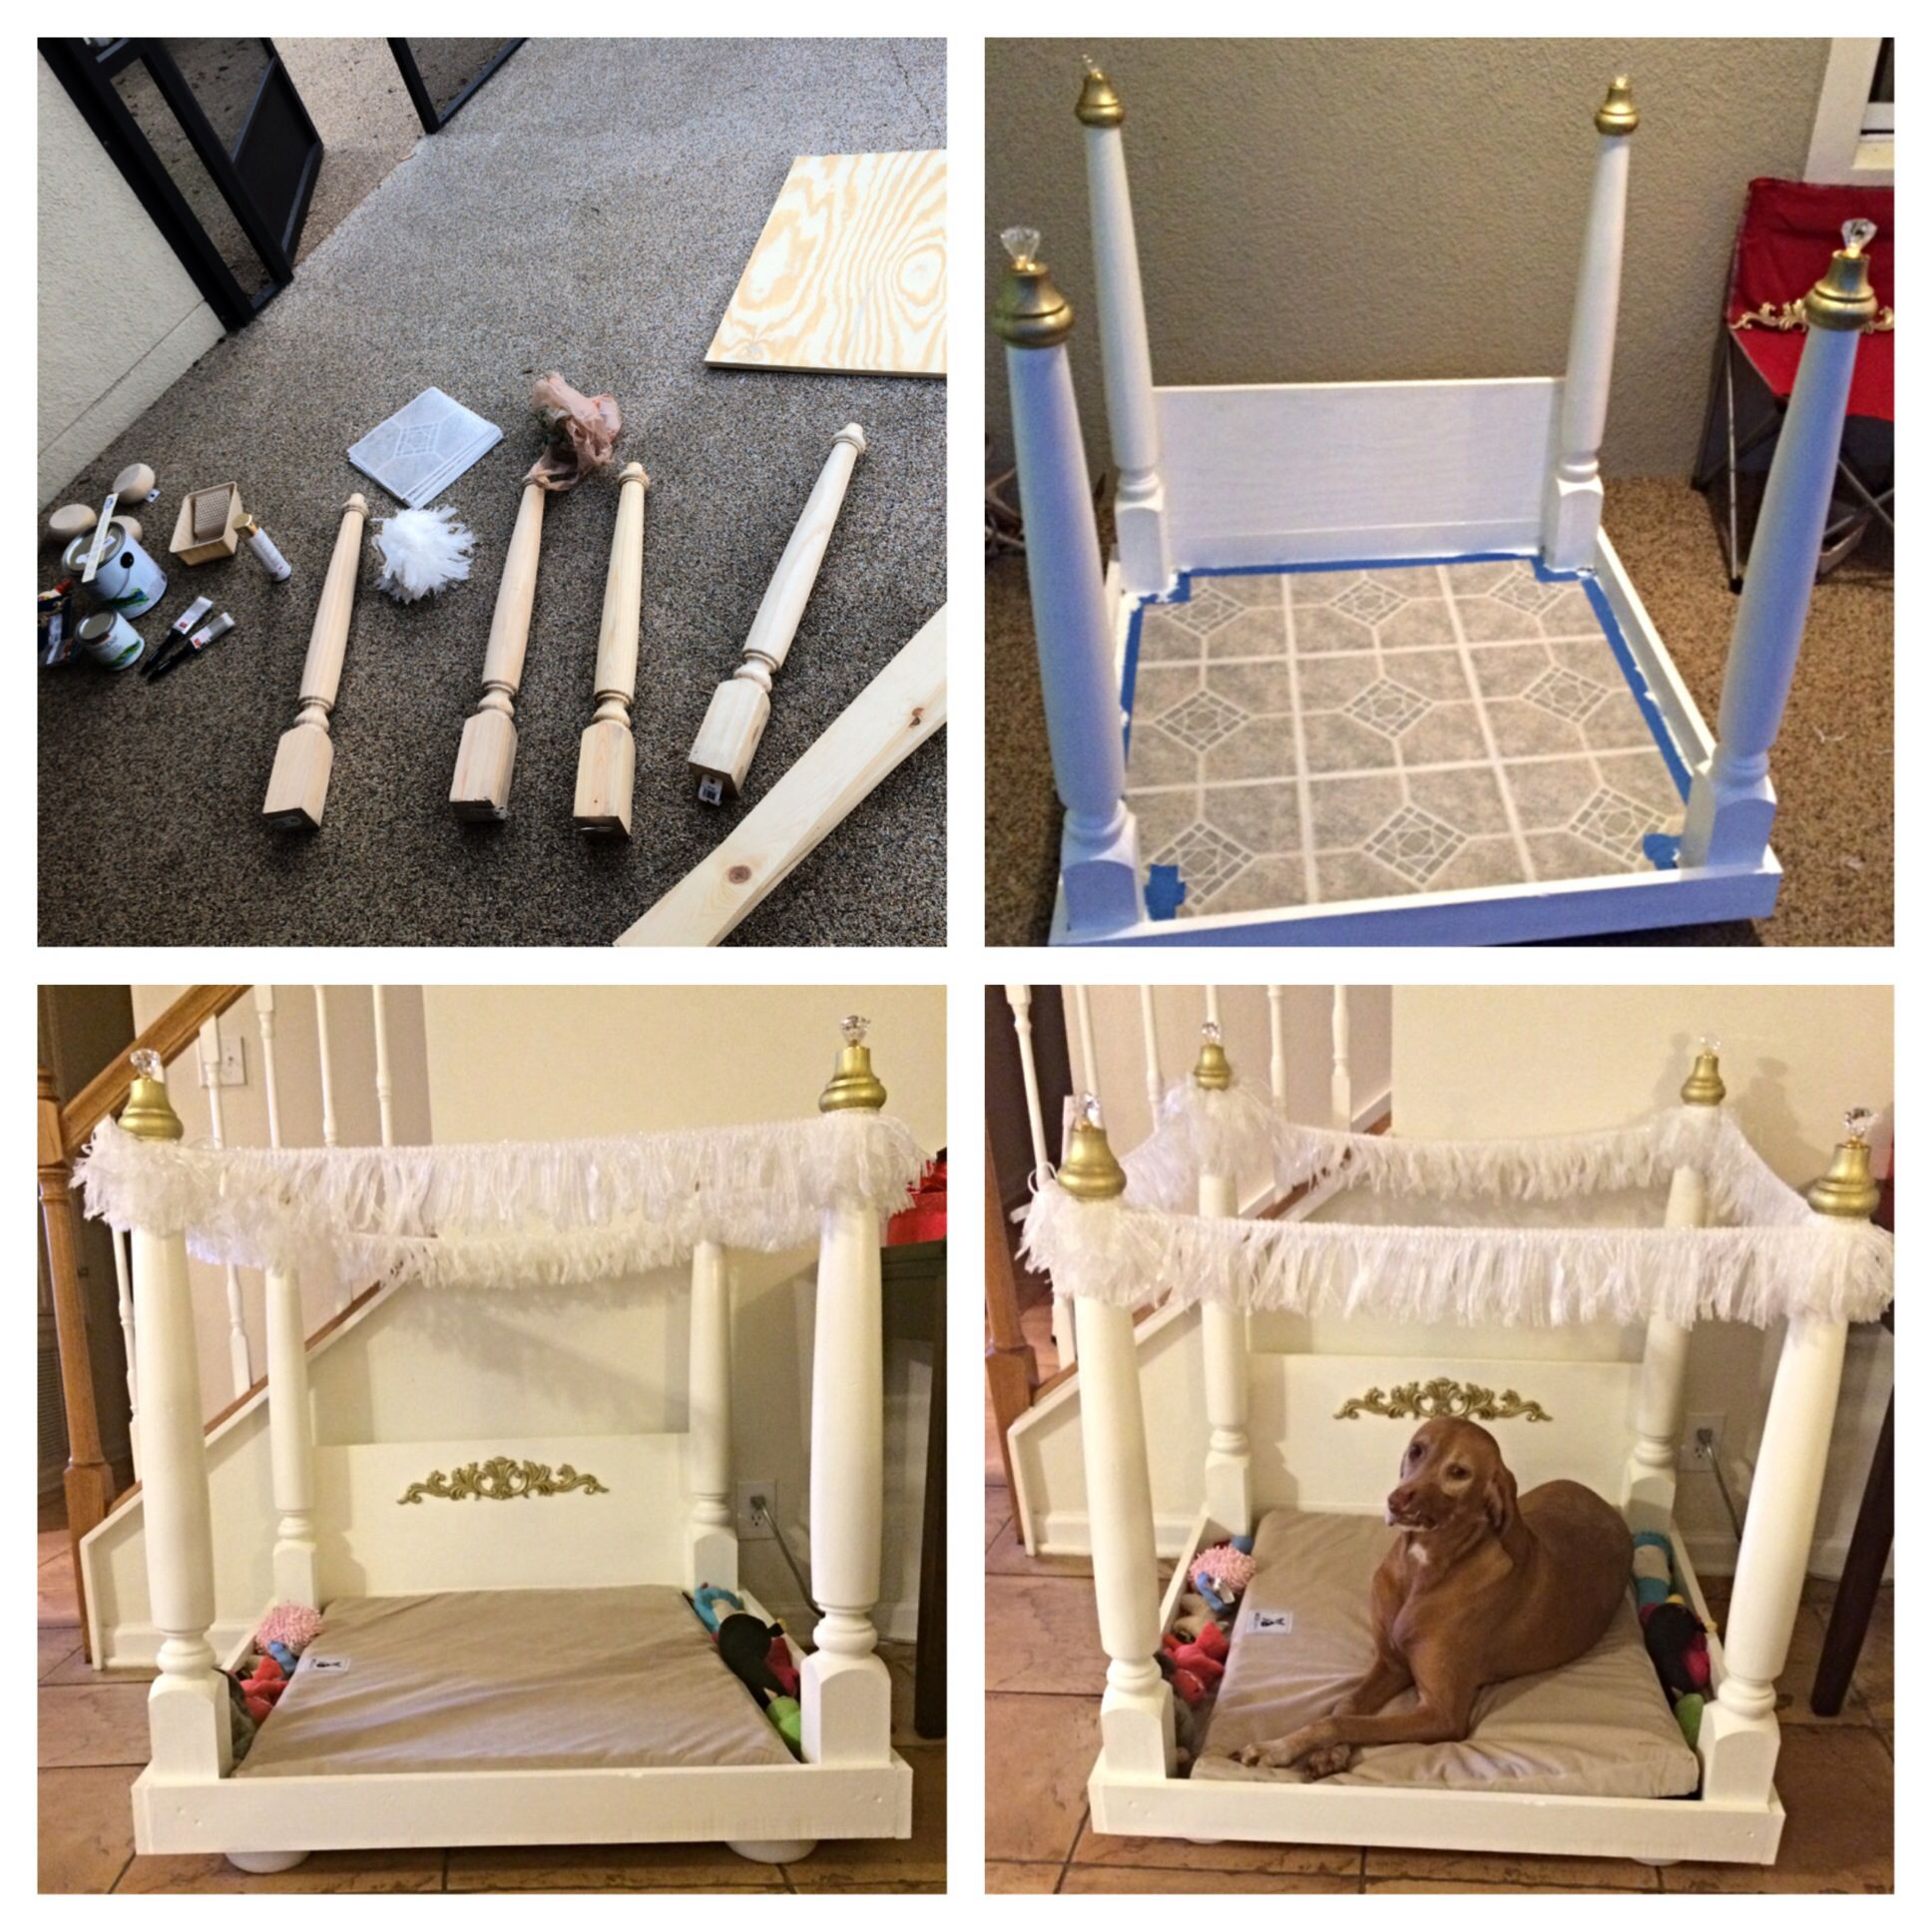 Diy Hundebett Diy Dog Bed Love This For My Pups For The Home